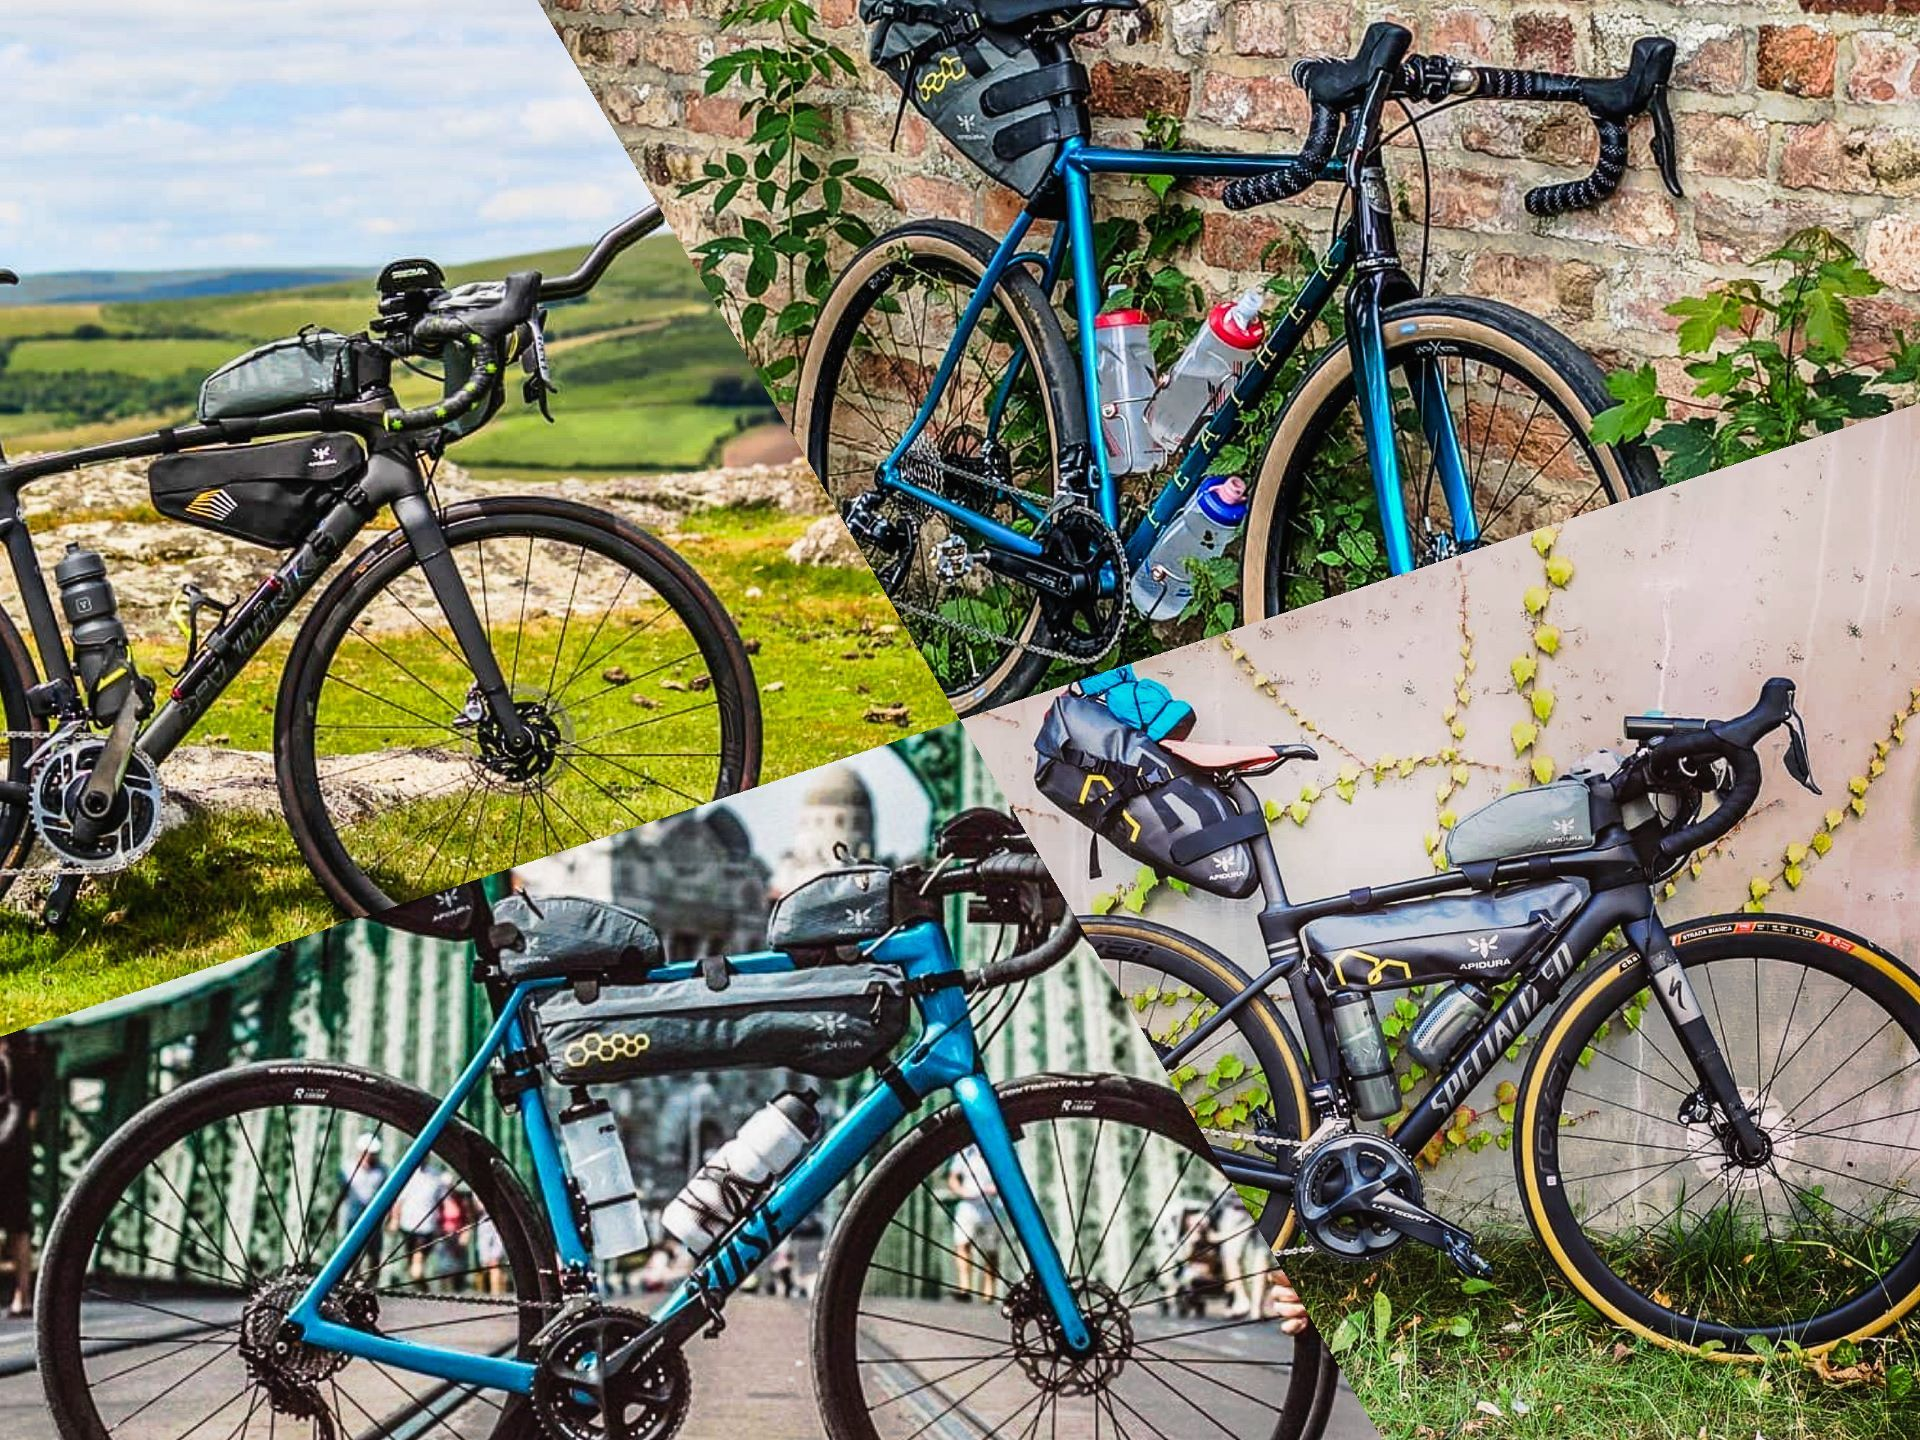 The 2019 Transcontinental Race Bikes You'll Love